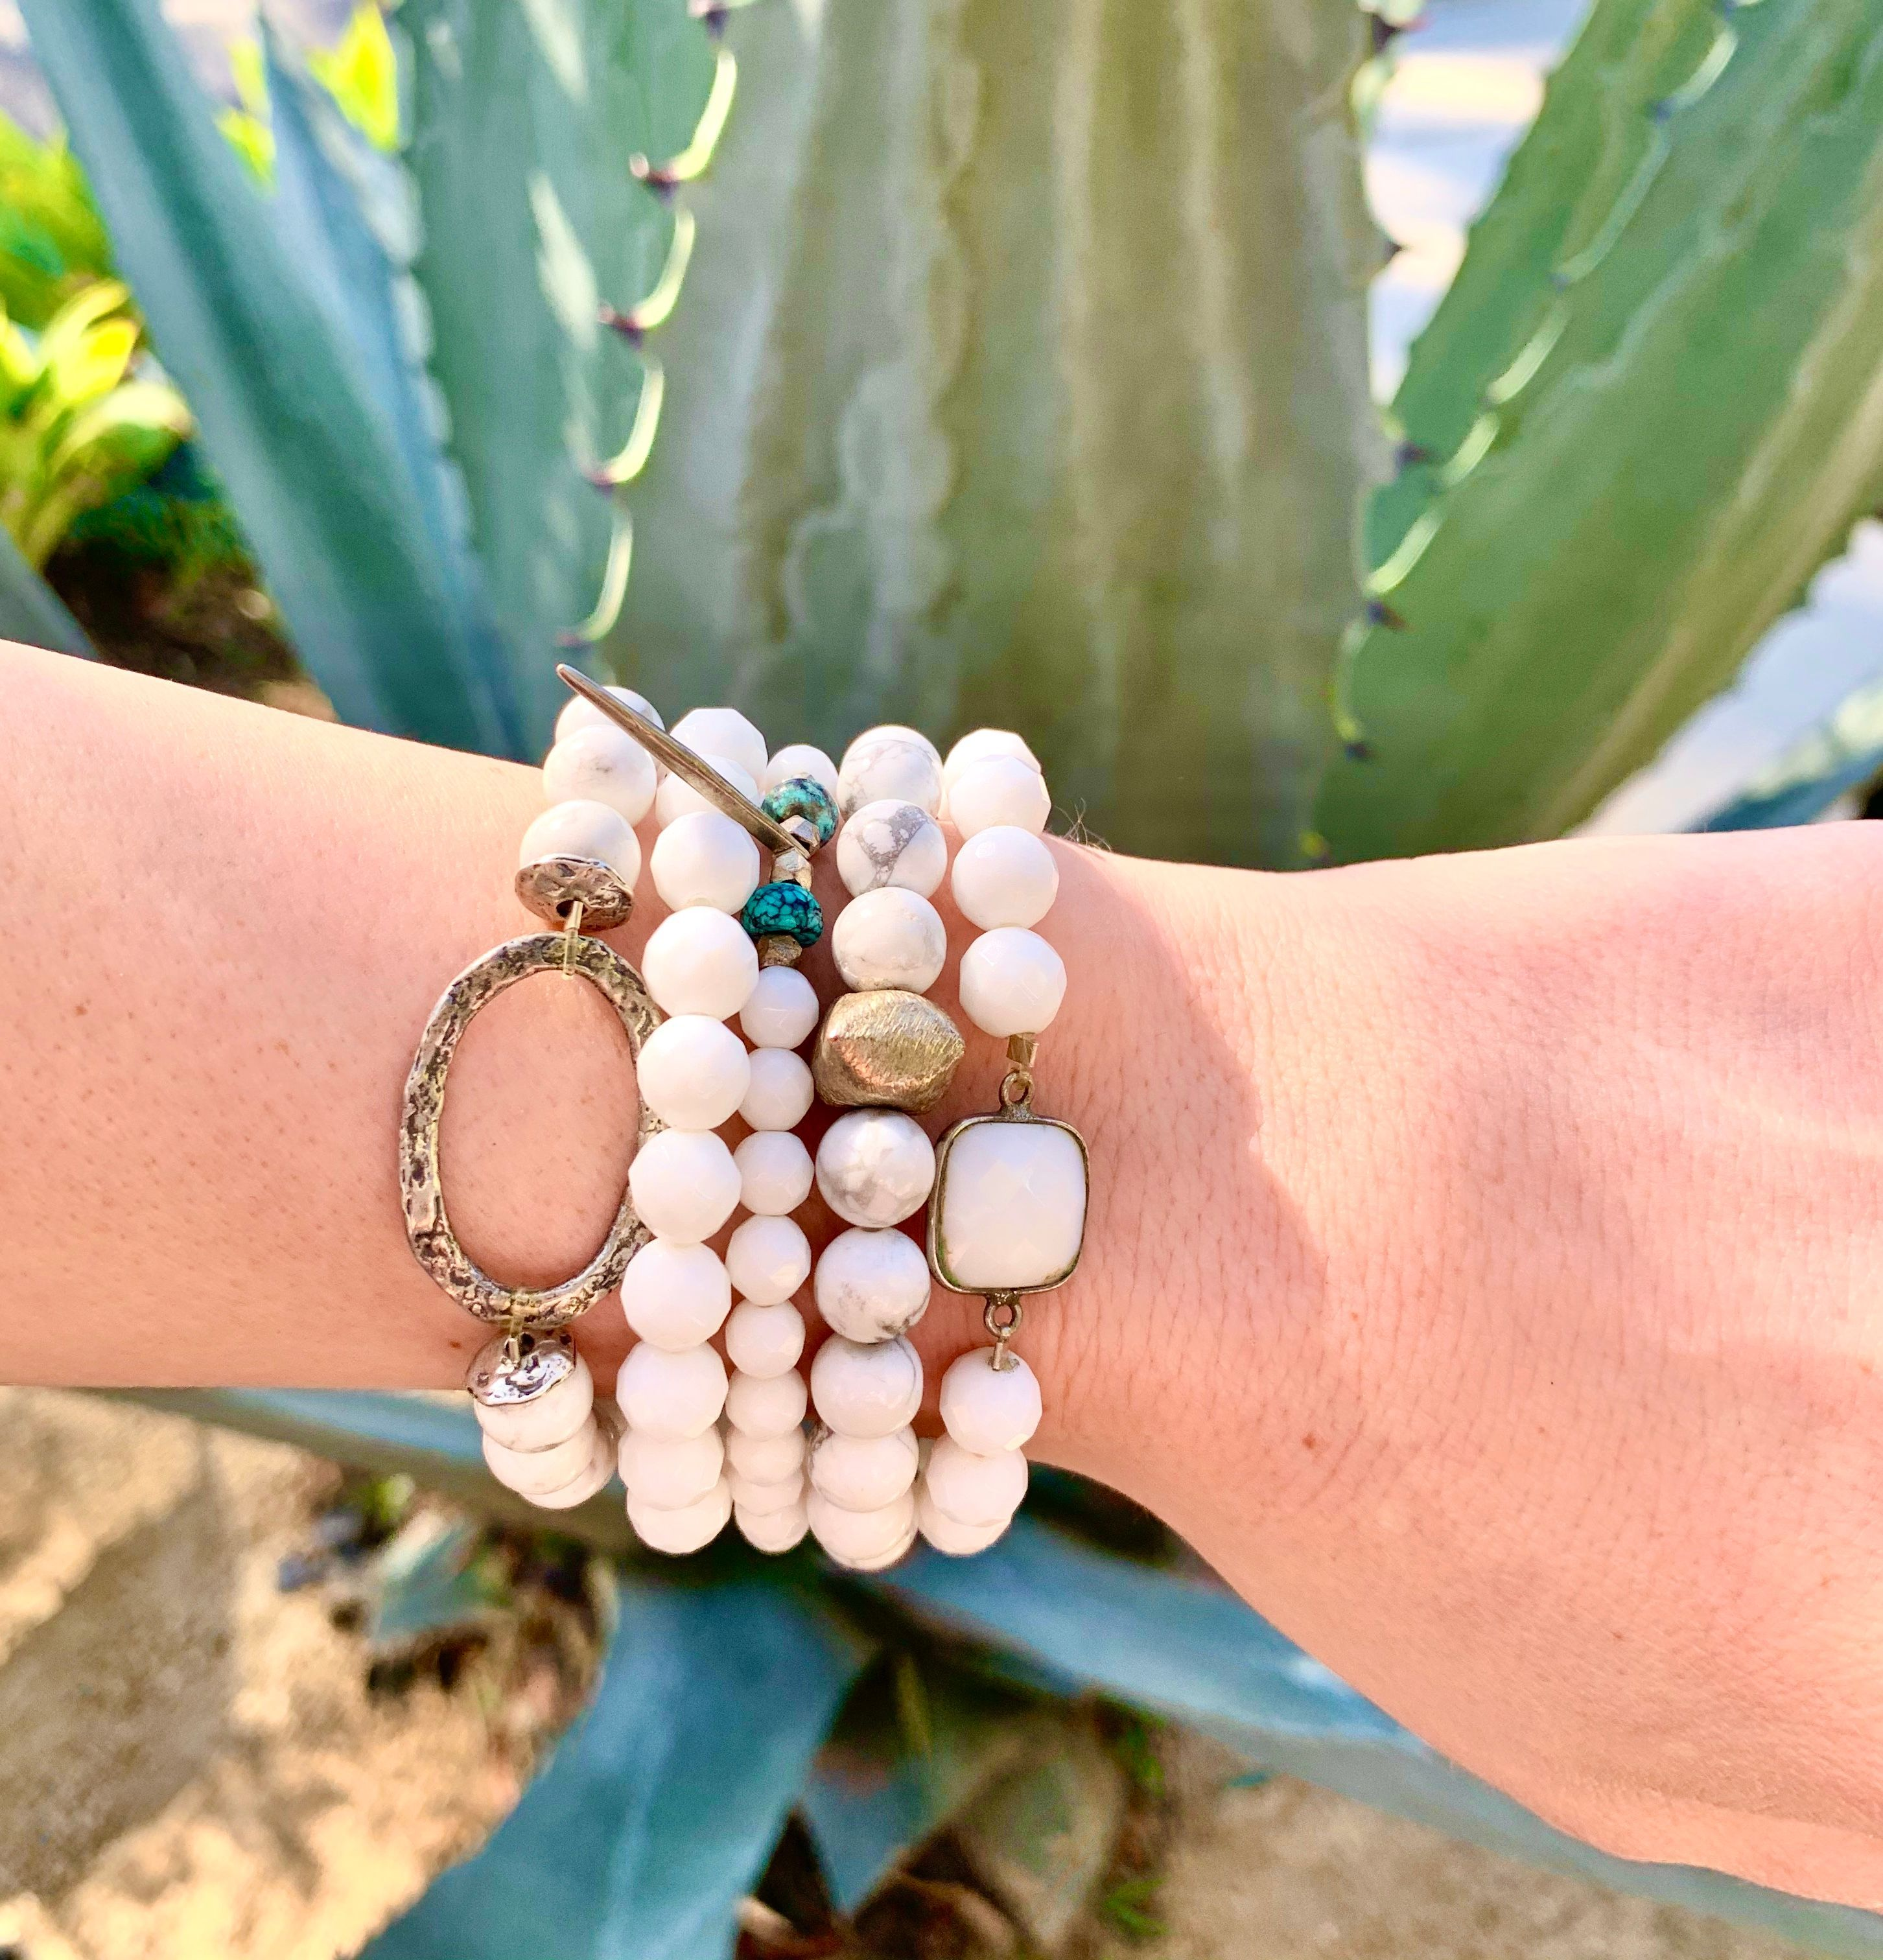 What will help bring you strength, confidence and firm control over one's physical body, emotions and spirituality - White Onyx! Try it on... - - - - - #whiteonyx #bracelets #sterling #stack #orangecounty #costamesa